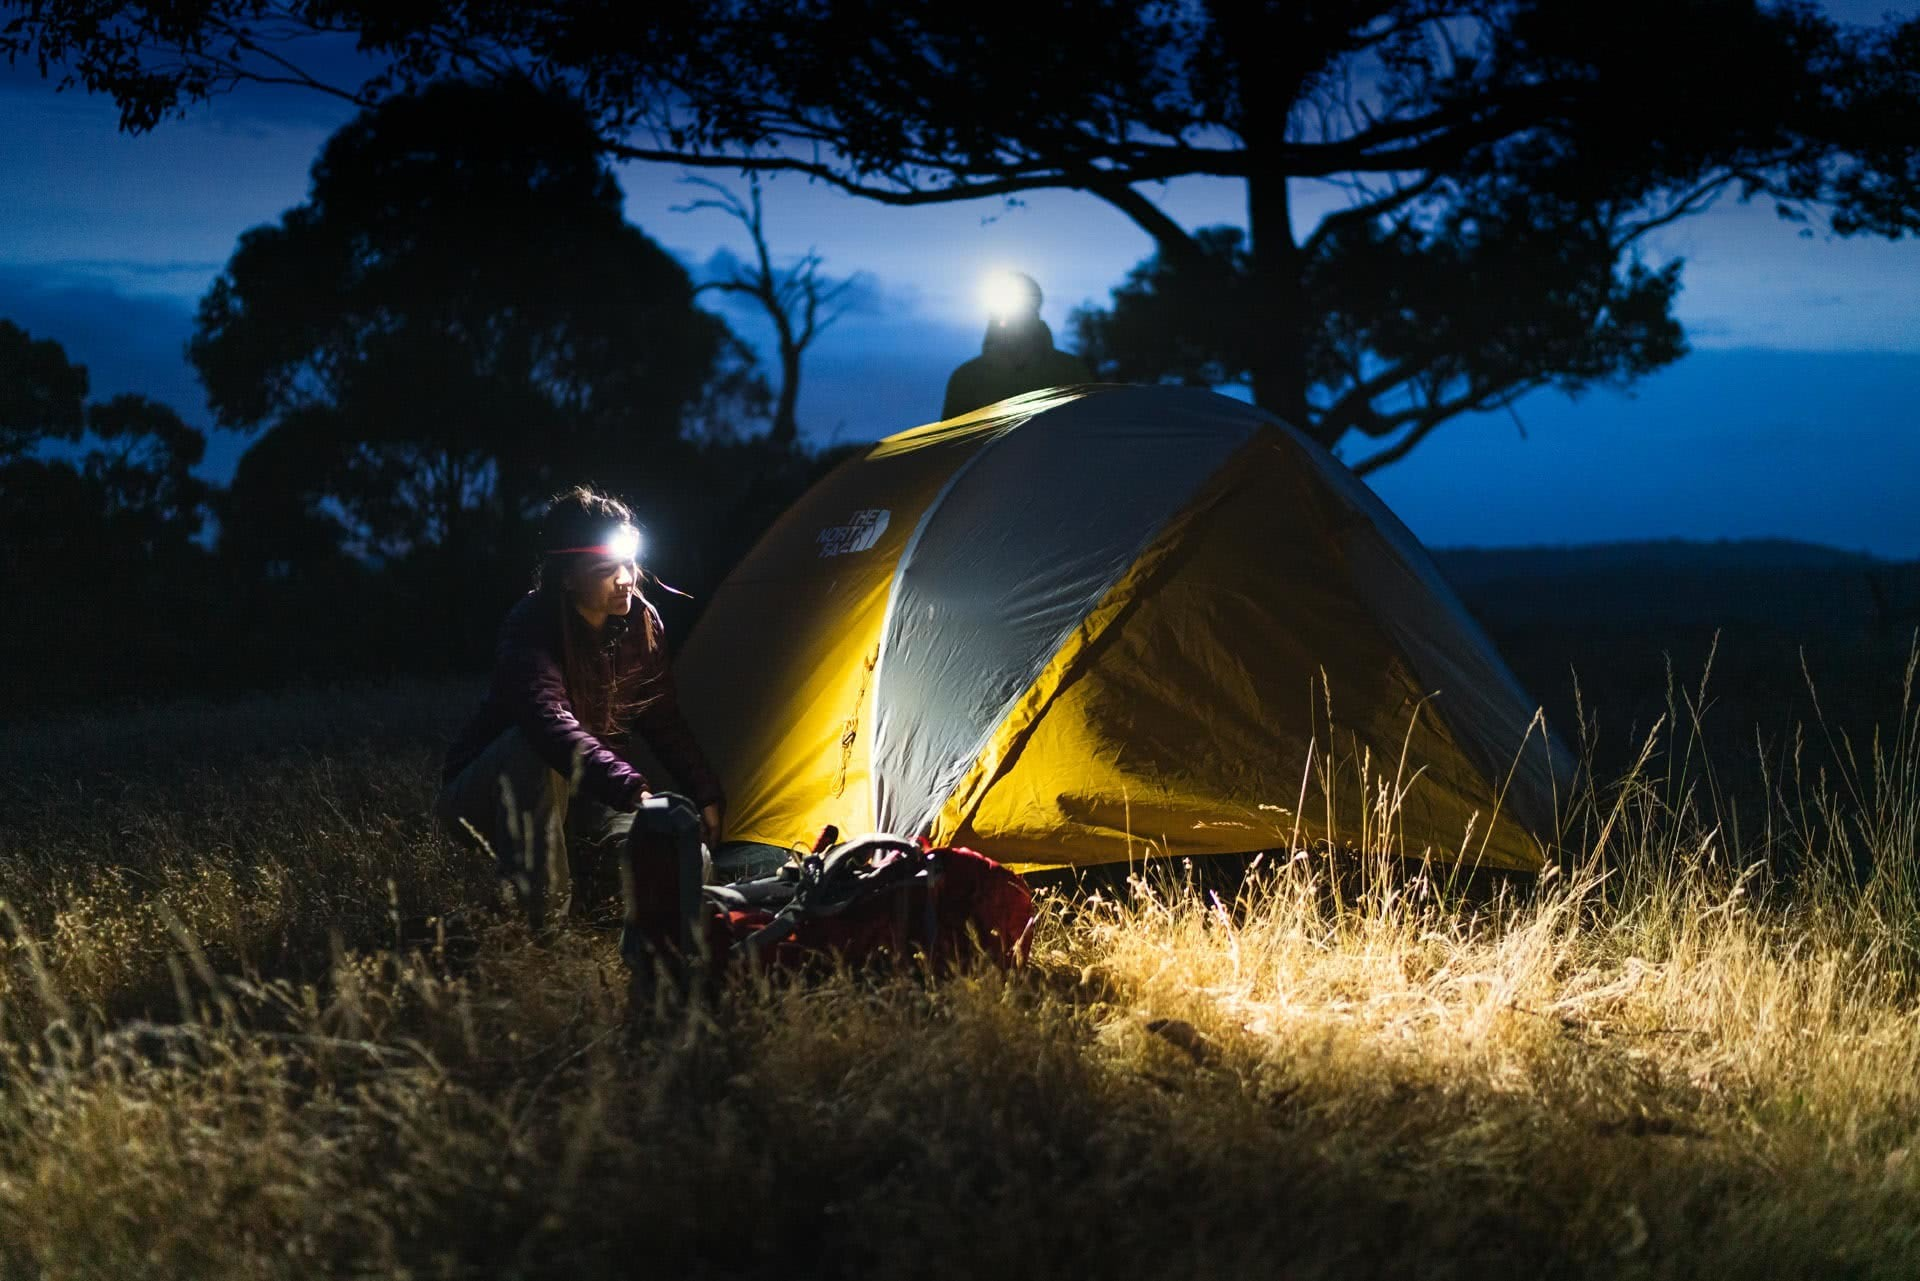 5 Adventures To Make Life Unboring, knog, photo by guy wilmot, empress canyon, blue mountains, nsw, bilby headlamp,